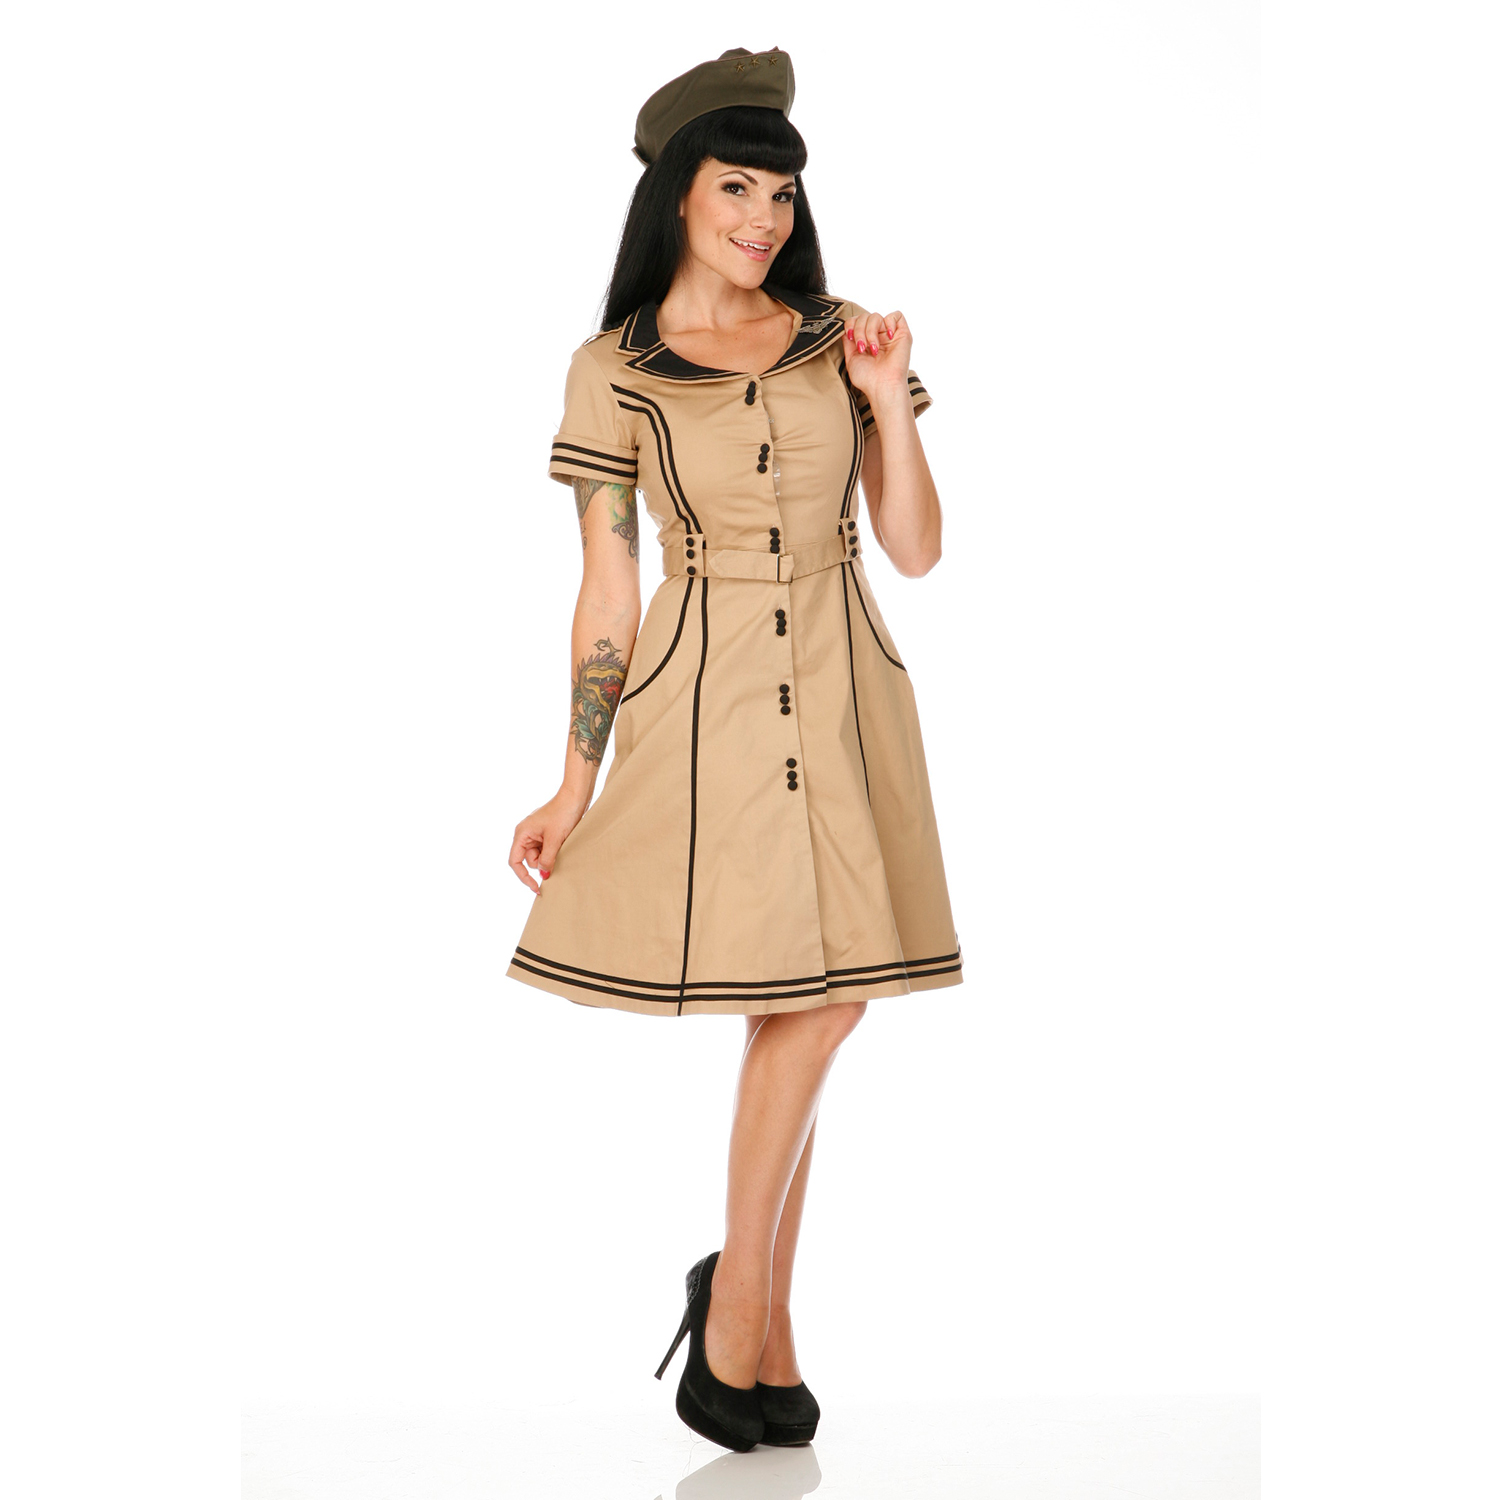 damen kleid beige 50s vintage stil retro stewardess ausgestelltes swing kleid ebay. Black Bedroom Furniture Sets. Home Design Ideas